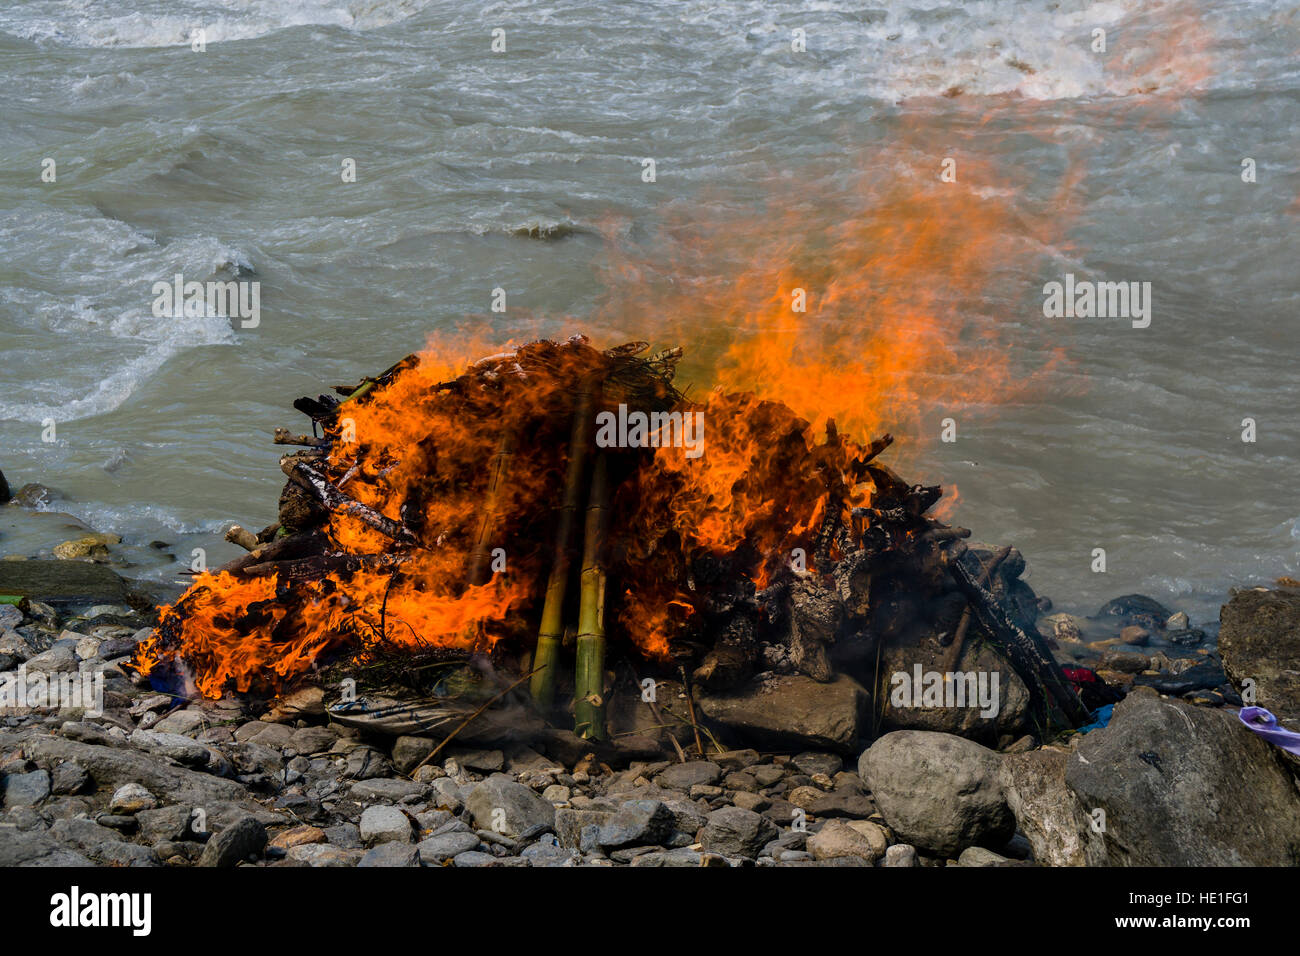 The fire of the funeral of a death body at the cremation ground on the bank of the river Kali Gandaki is burning Stock Photo